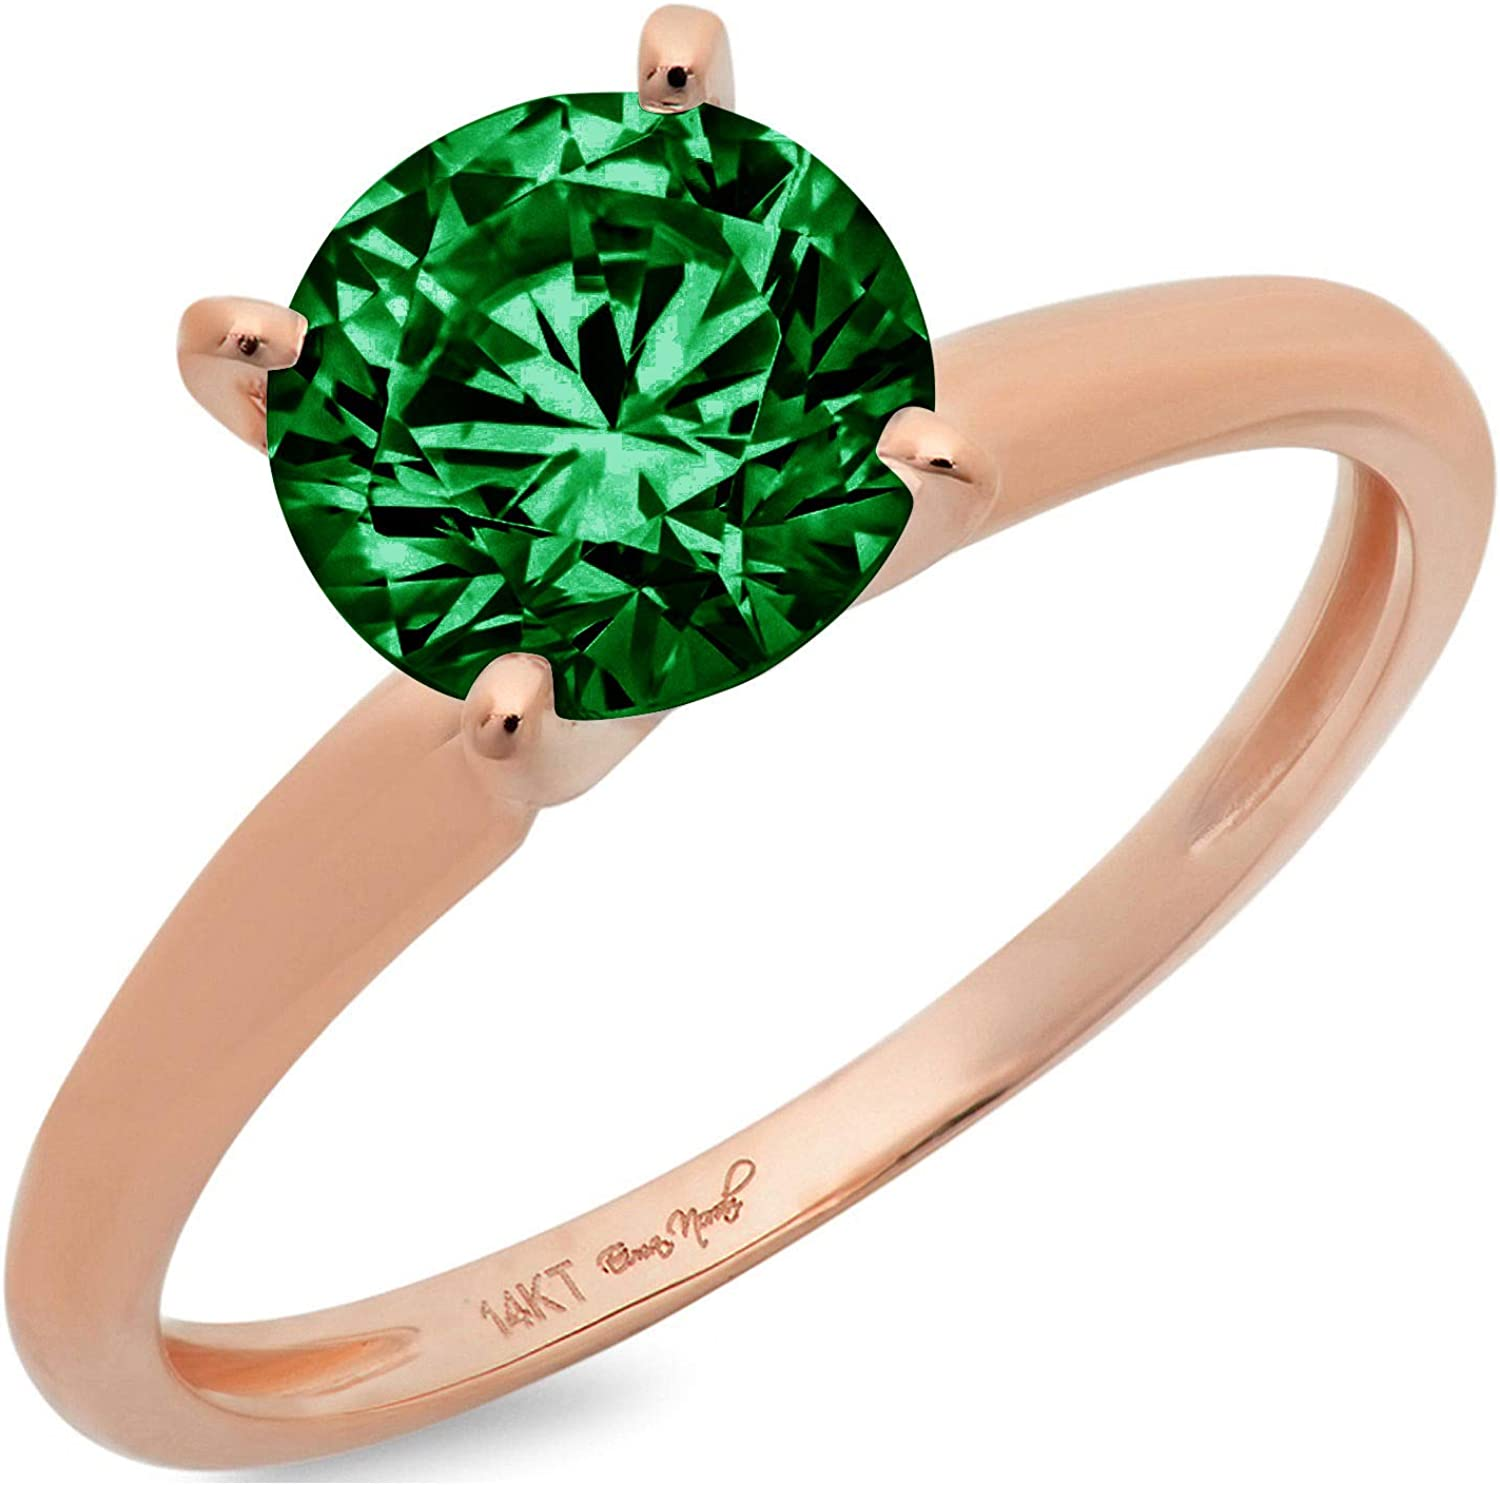 2.9ct Brilliant Round Cut Solitaire Flawless Simulated Cubic Zirconia Green Emerald Ideal VVS1 4-Prong Engagement Wedding Bridal Promise Anniversary Designer Ring in Solid 14k Rose Gold for Women